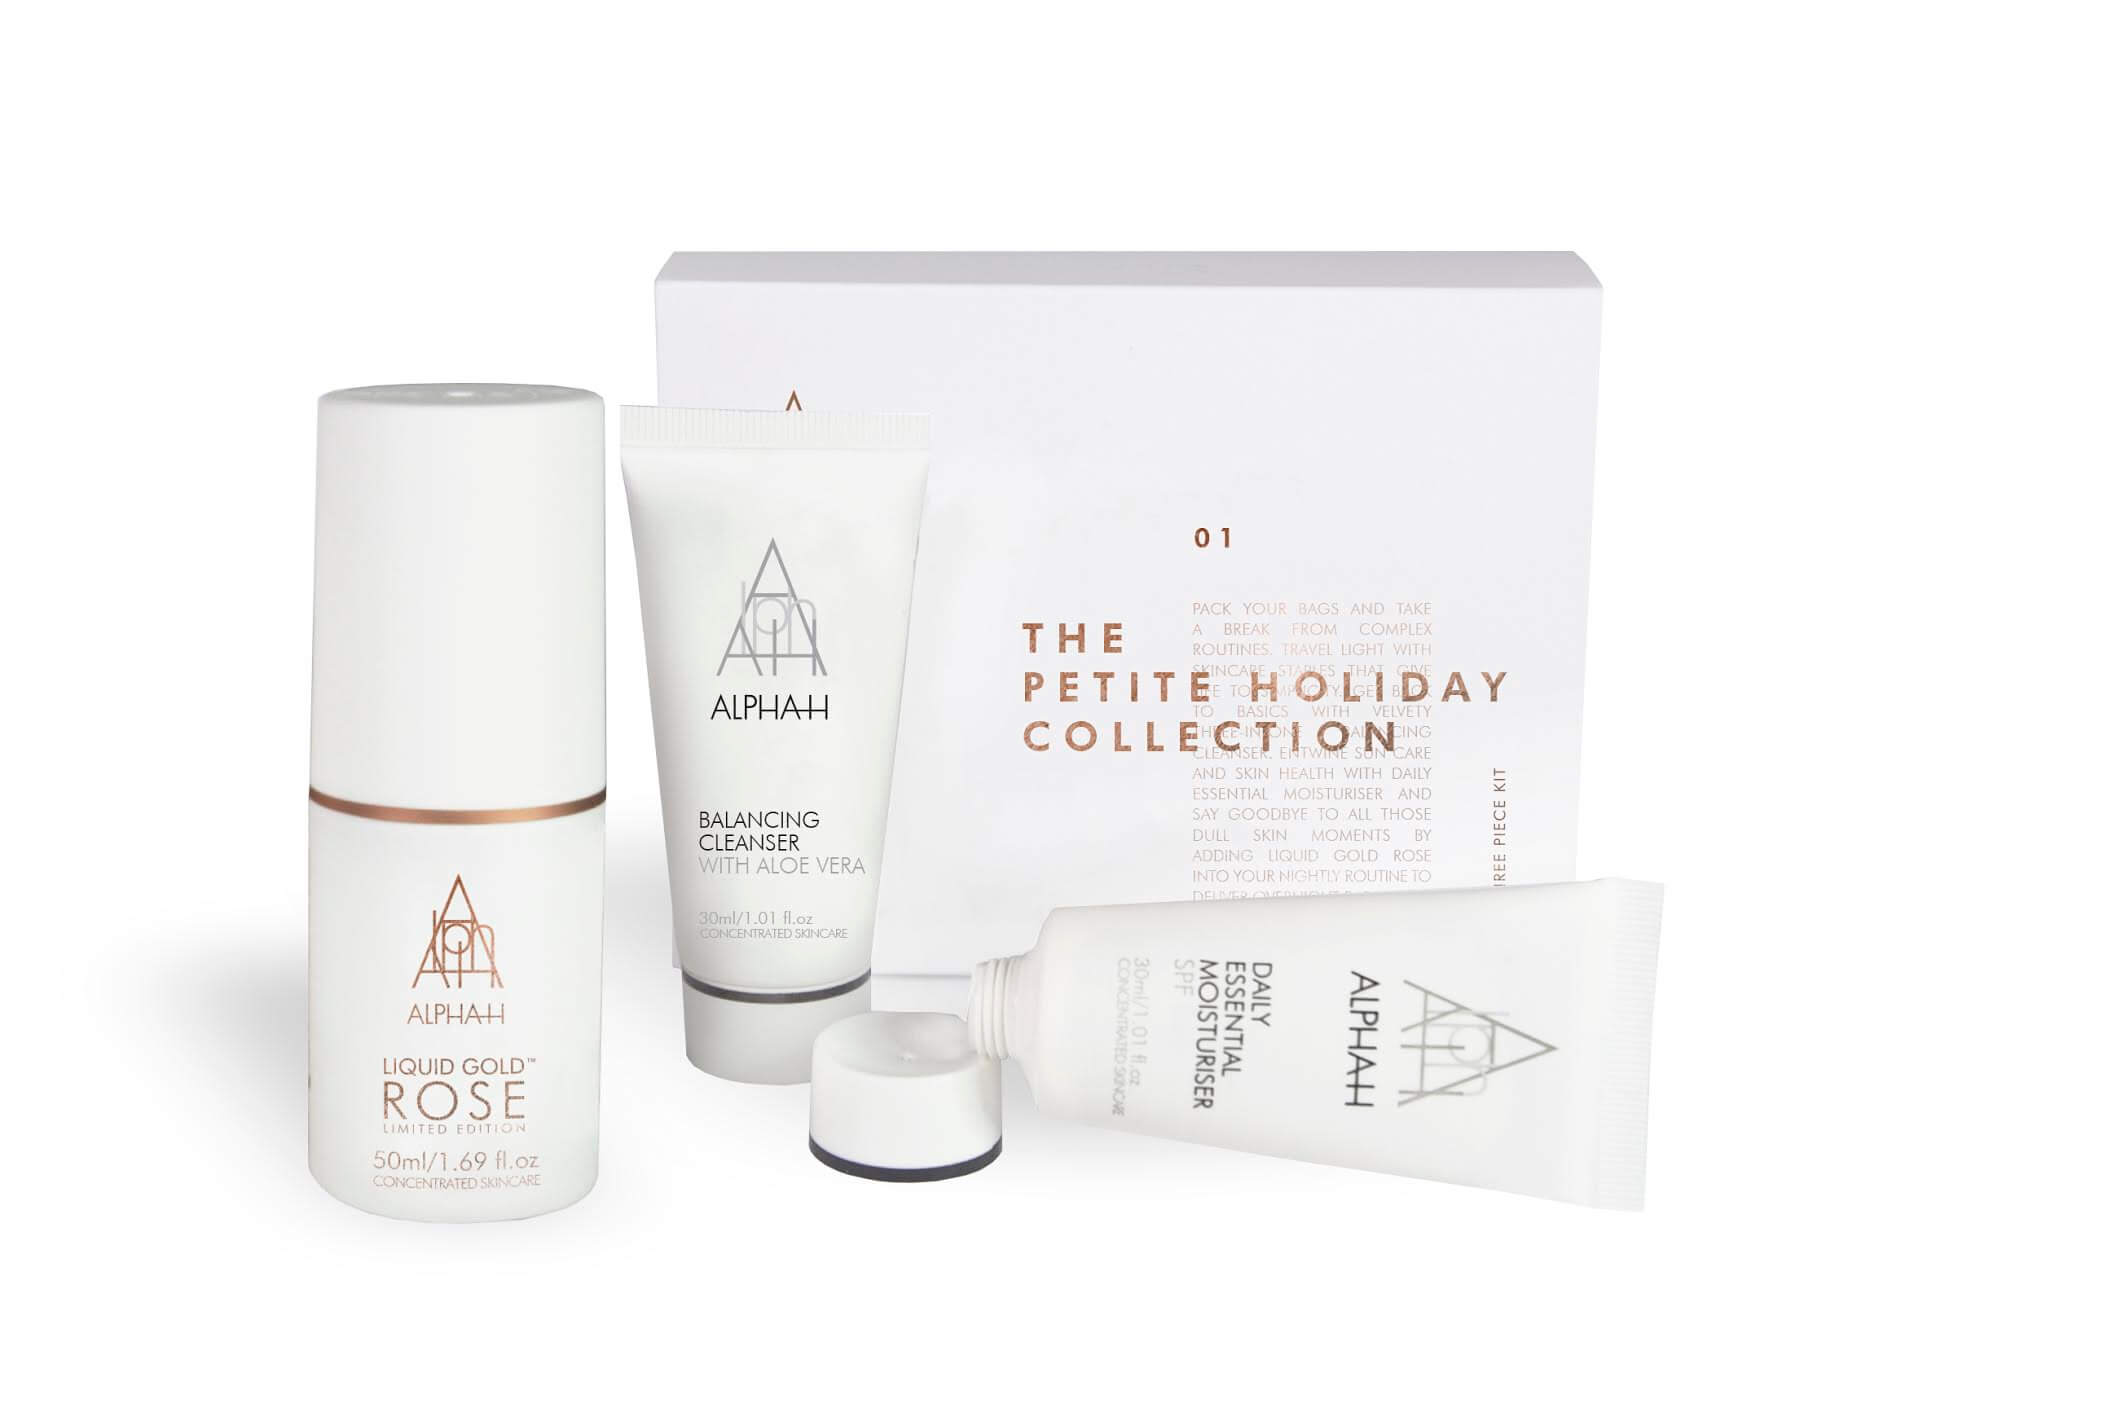 Luxury Beauty Gifts For Christmas Top 15 About Time Magazine